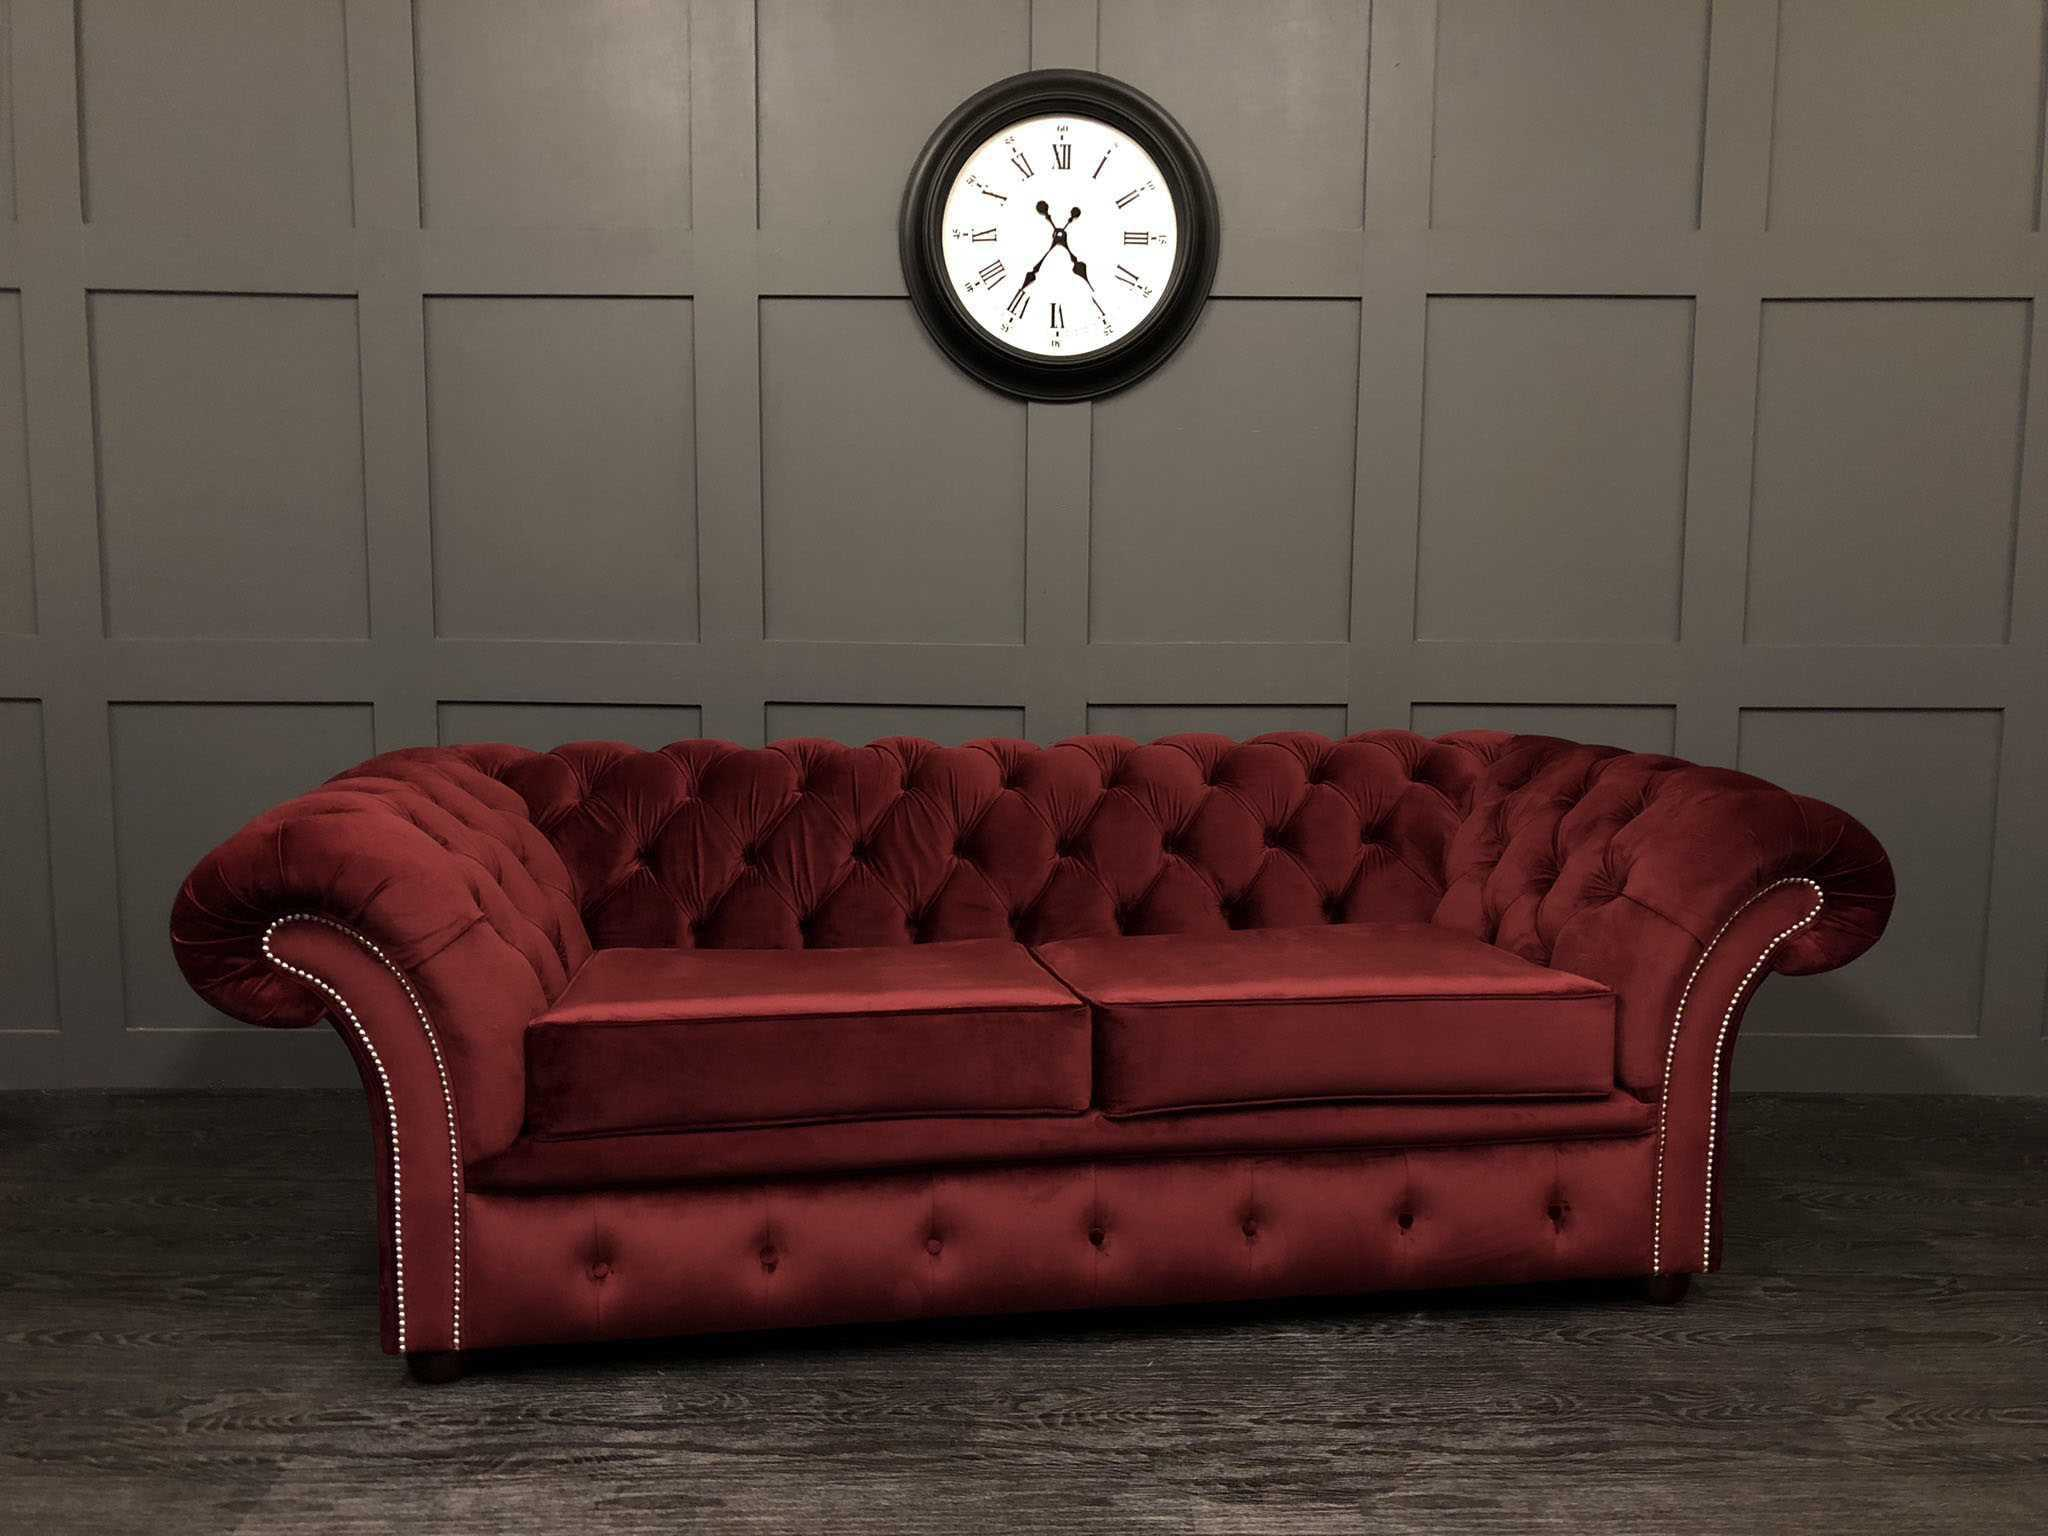 London 2 seat chesterfield sofa bed cambio burgundy velvet